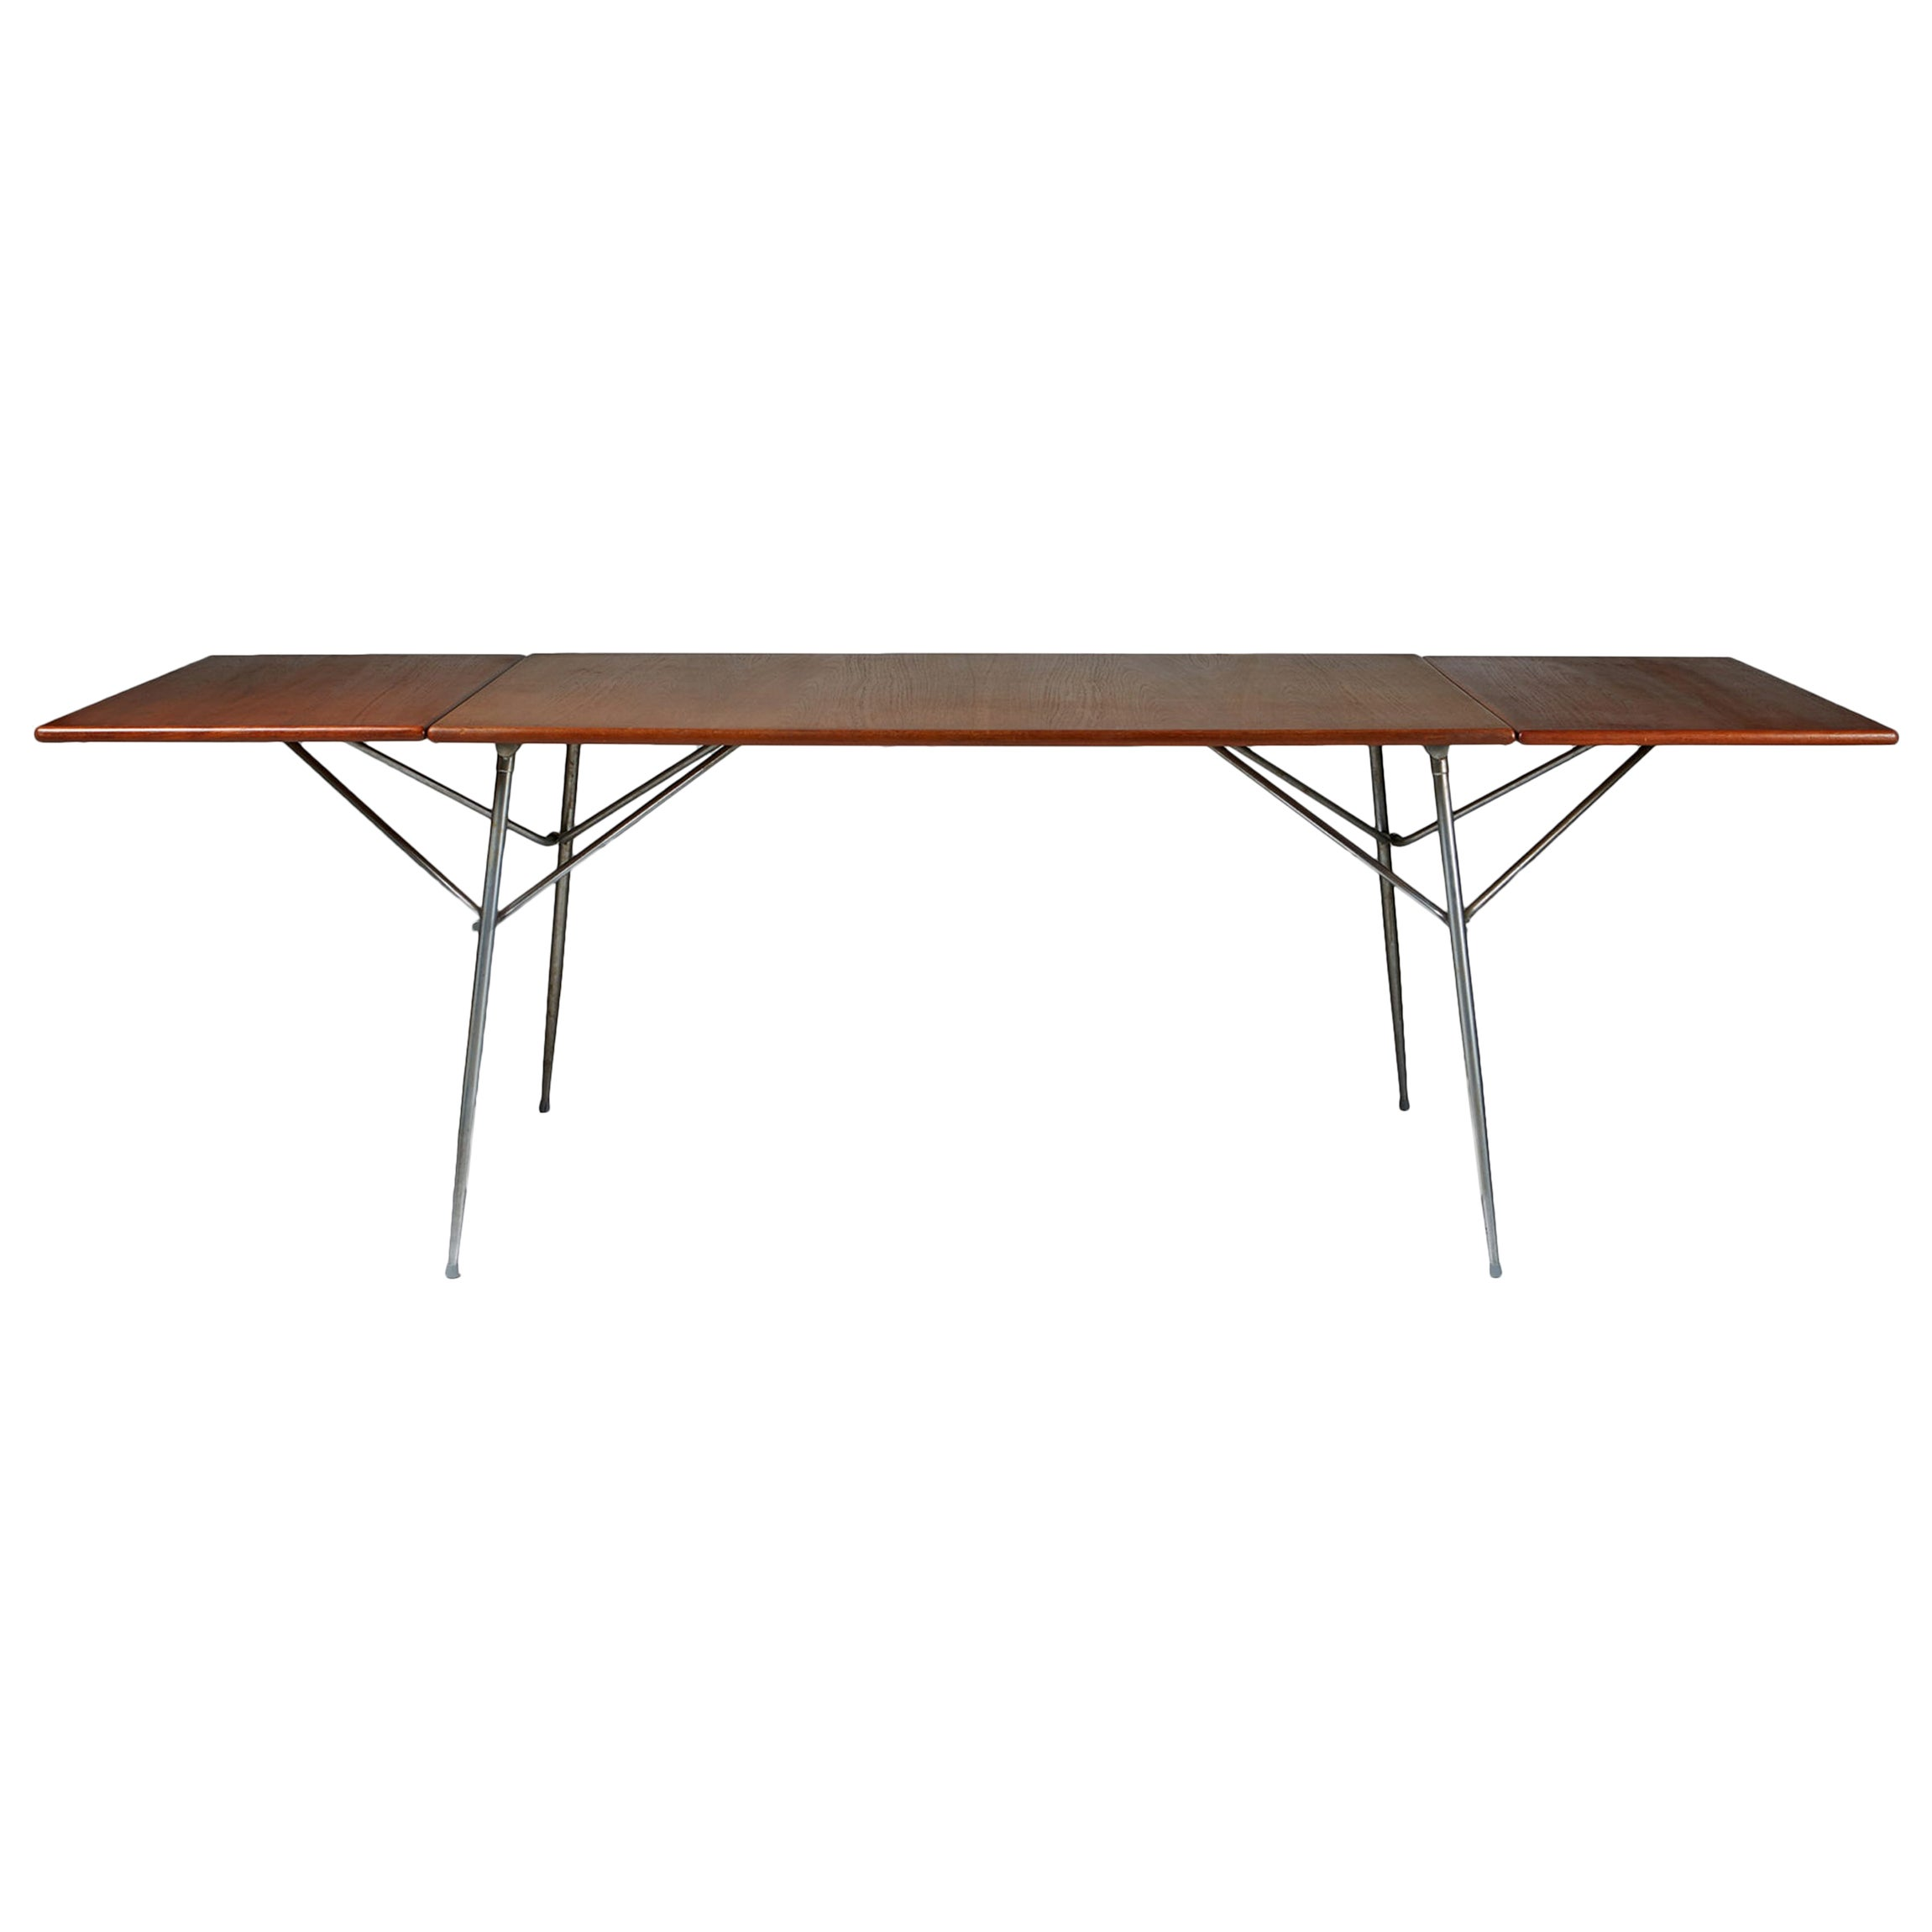 Drop-Leaf Desk or Dining Table by Børge Mogensen, Danish, 1950s